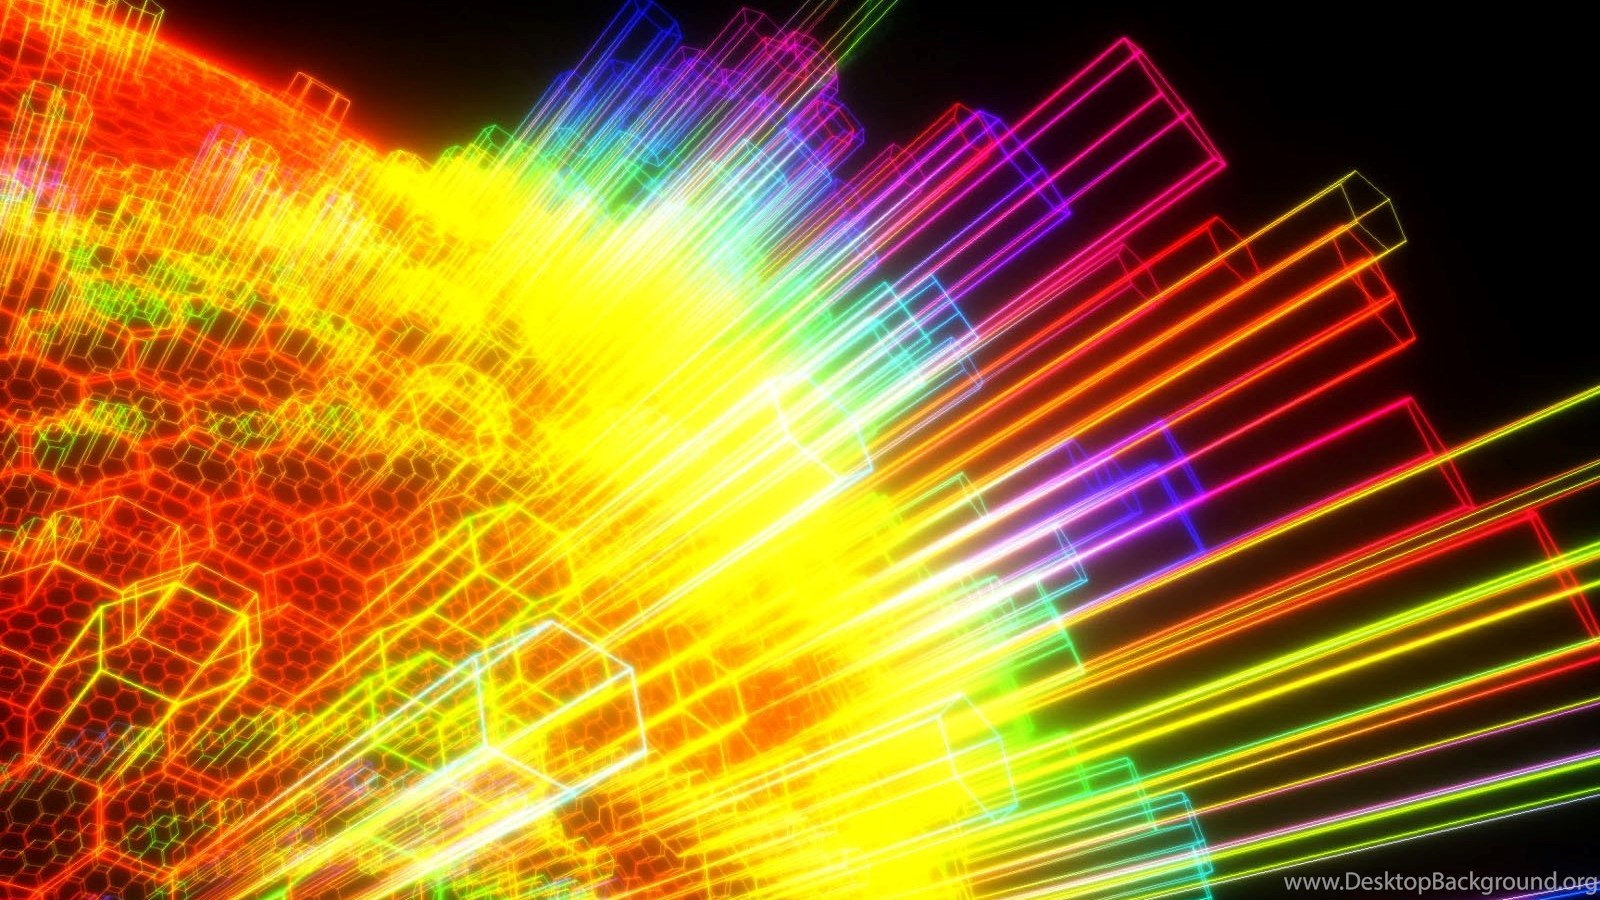 All new wallpapers geometry rainbow colours wallpapers desktop background - 1000 color wallpapers ...